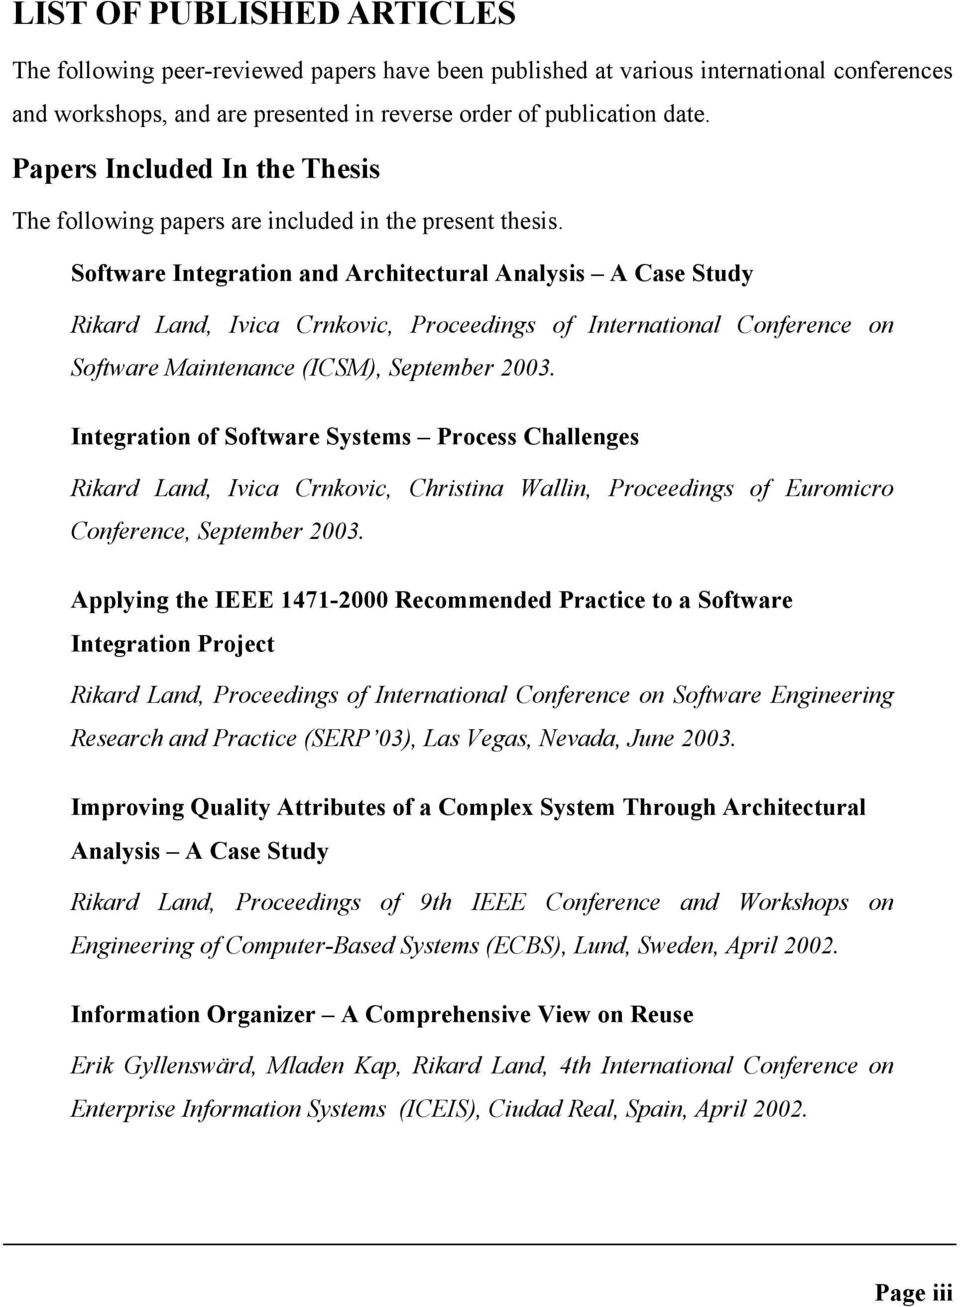 Software Integration and Architectural Analysis A Case Study Rikard Land, Ivica Crnkovic, Proceedings of International Conference on Software Maintenance (ICSM), September 2003.